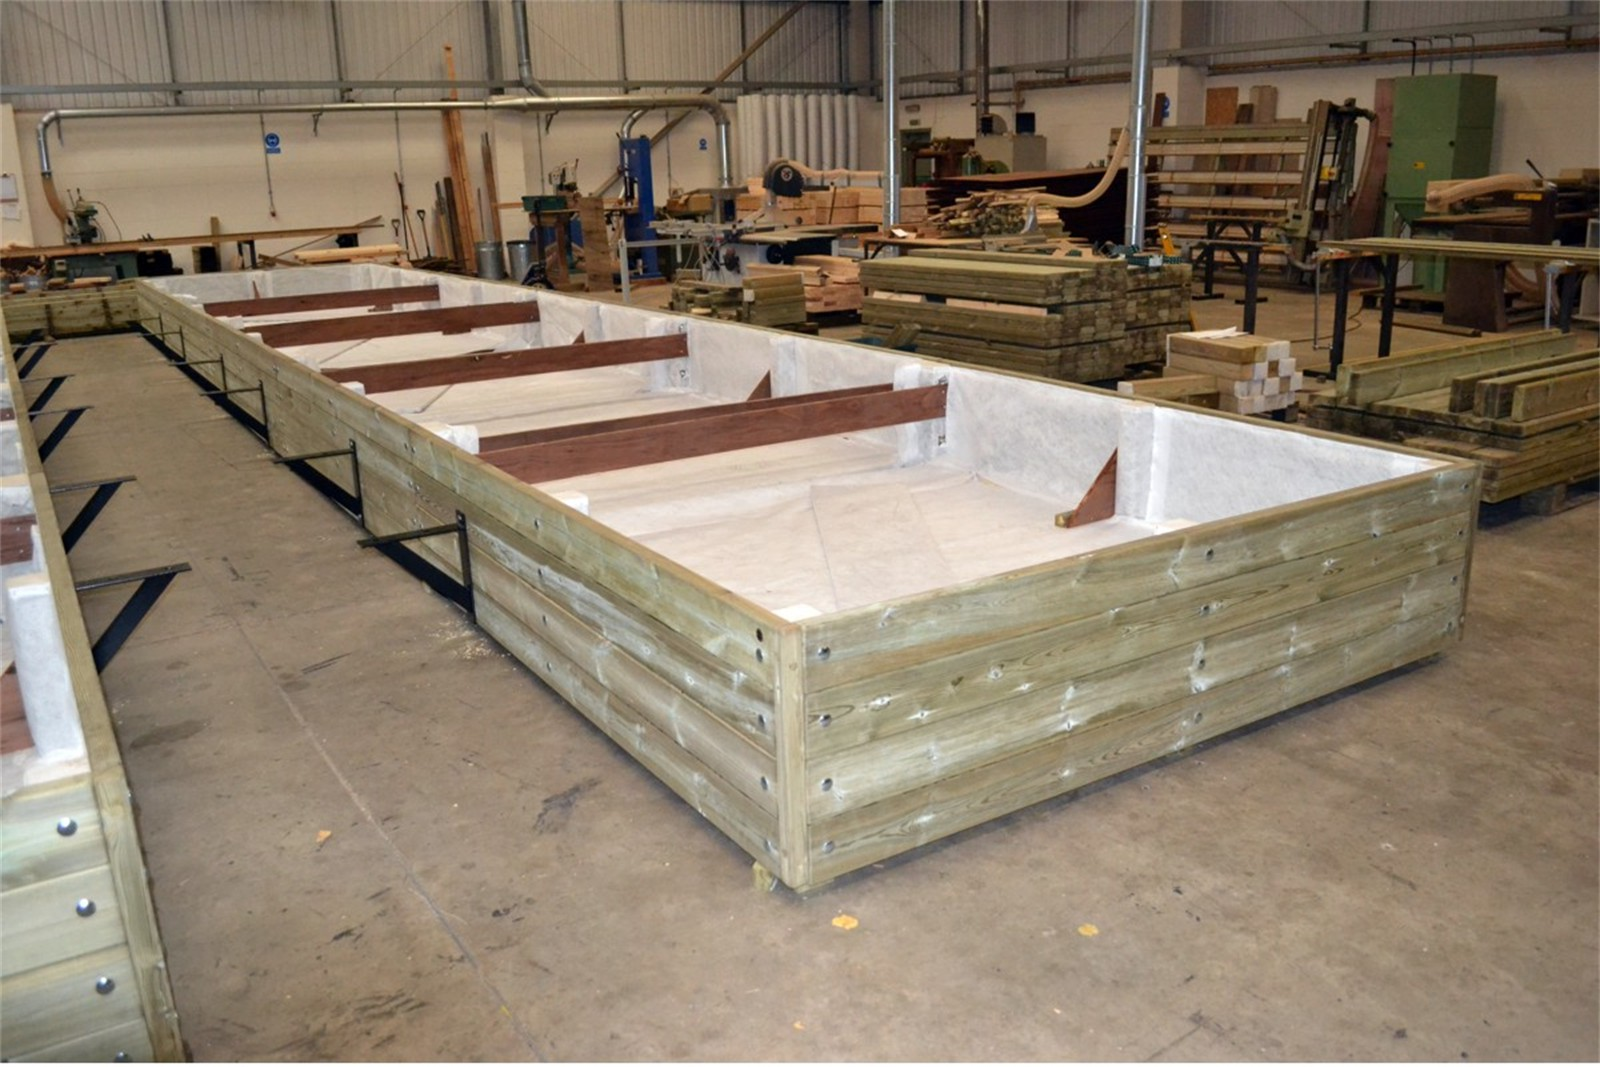 41pgr32 - Large Grenadier planter in manufacture